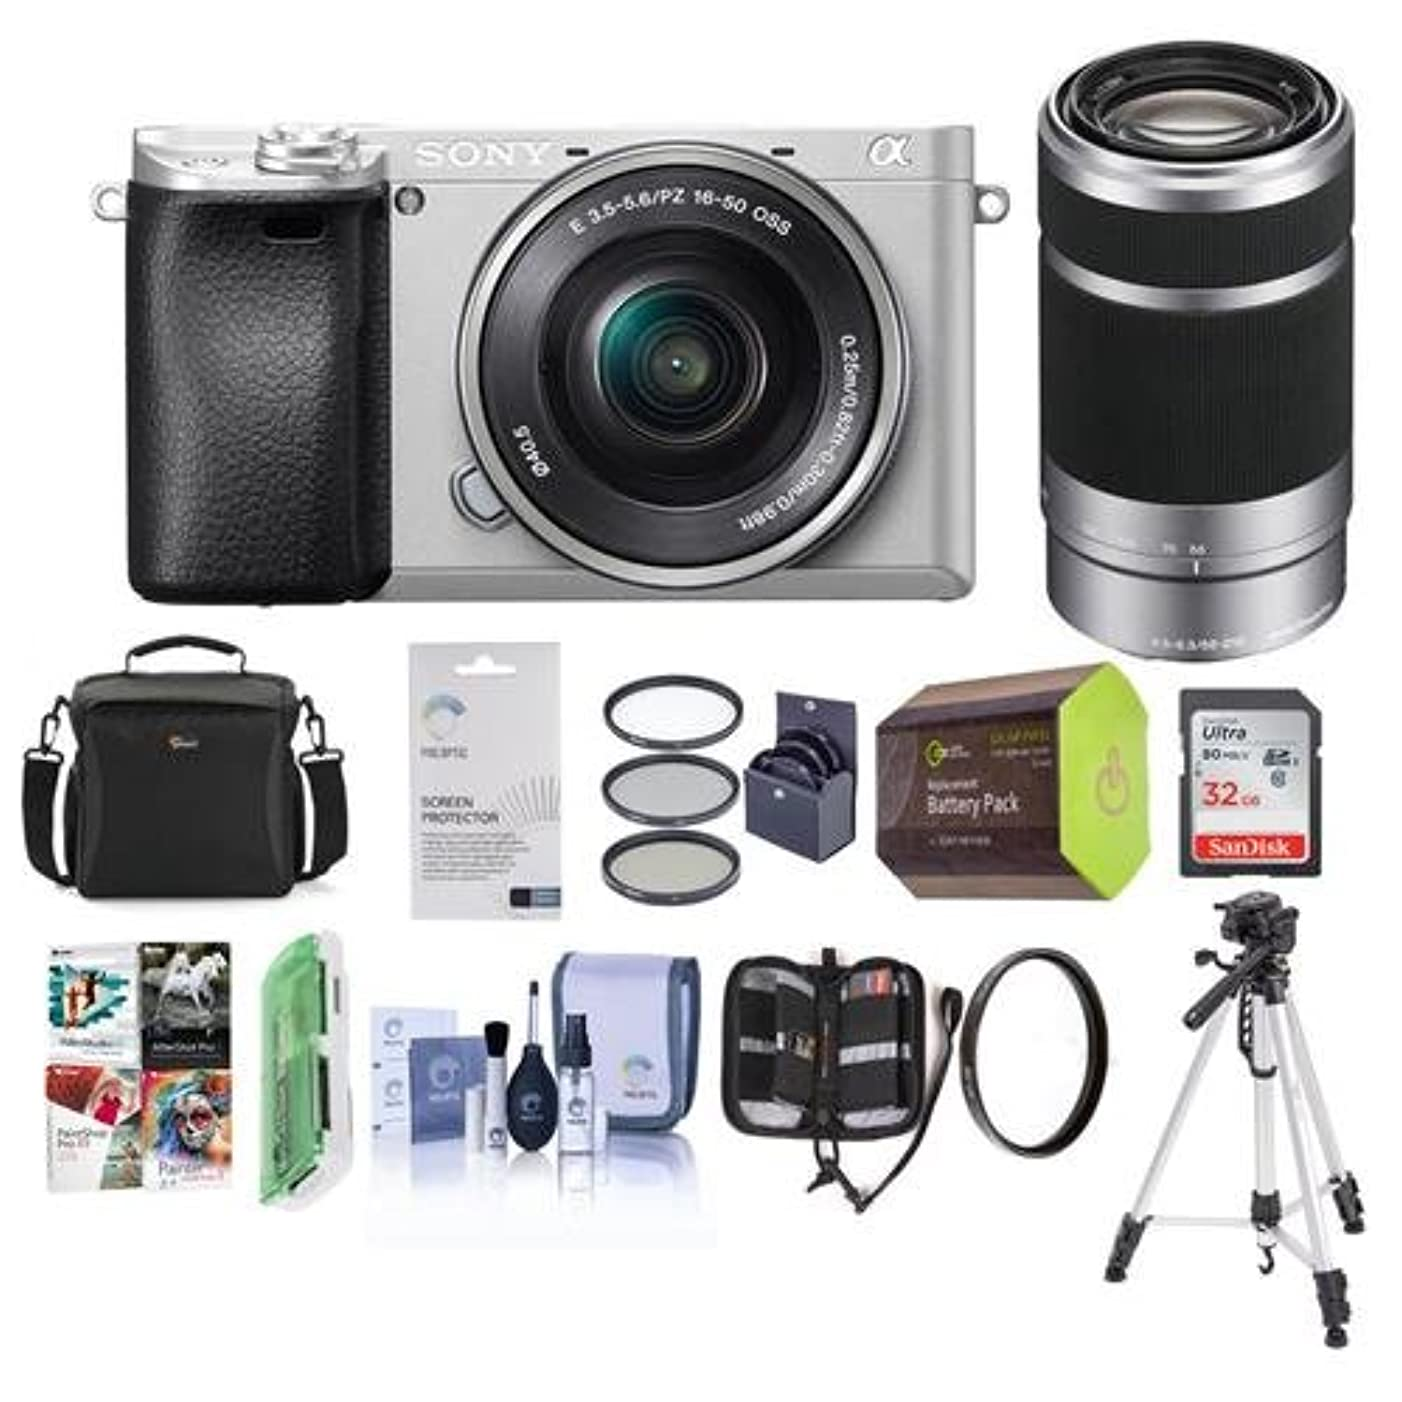 Sony Alpha a6300 Mirrorless Digital Camera Body Silver with 16-50mm E-Mount Lens and 55-210mm f/4.5-6.3 OSS - Bundle with 32GB Class 10SDHC Card, Camera Case, Spare Battery, Software Package and More